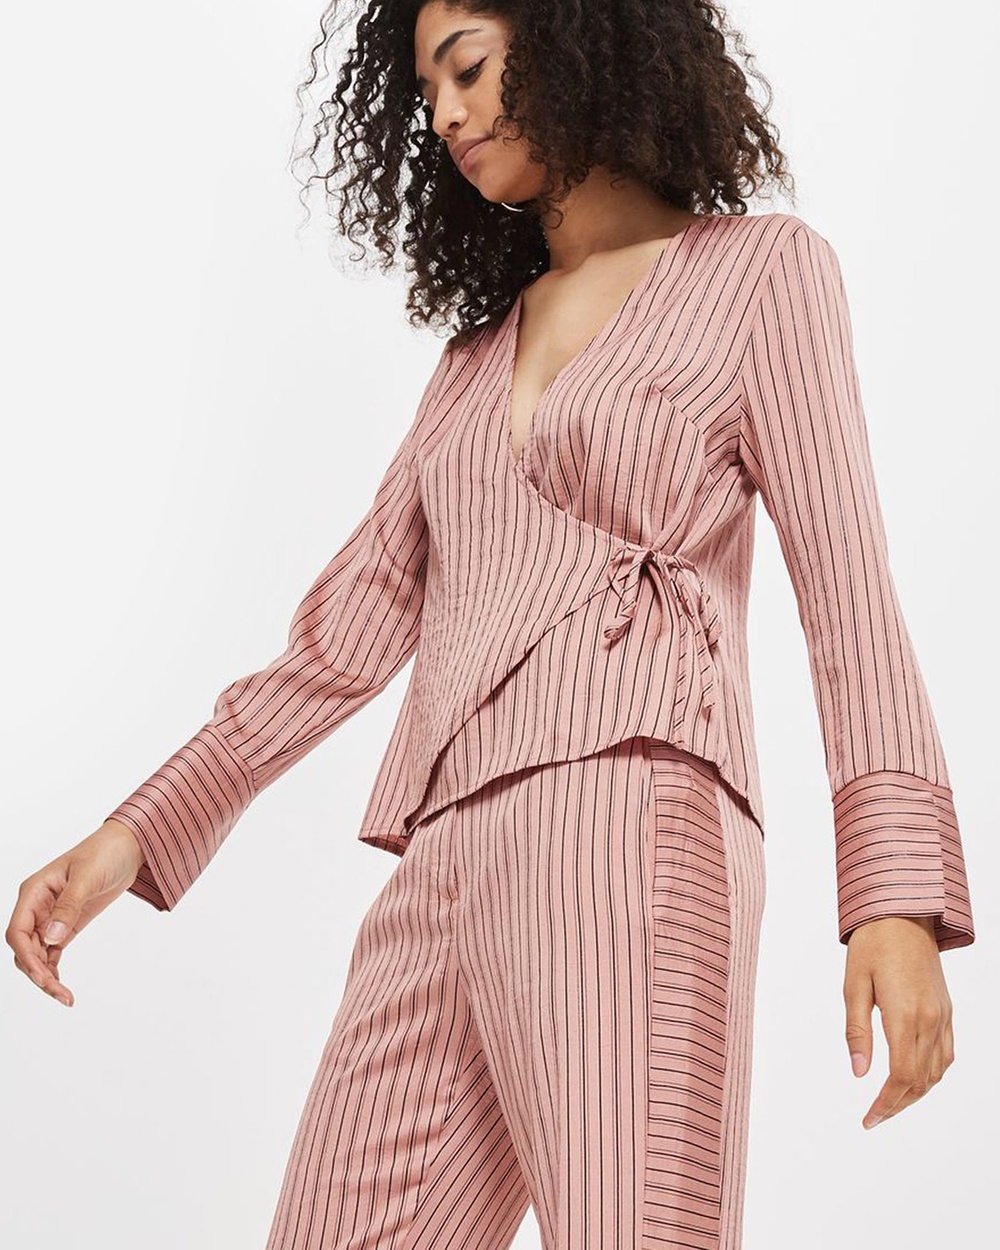 TOPSHOP Slinky Striped Wrap Blouse Tops Blush Slinky Striped Wrap Blouse